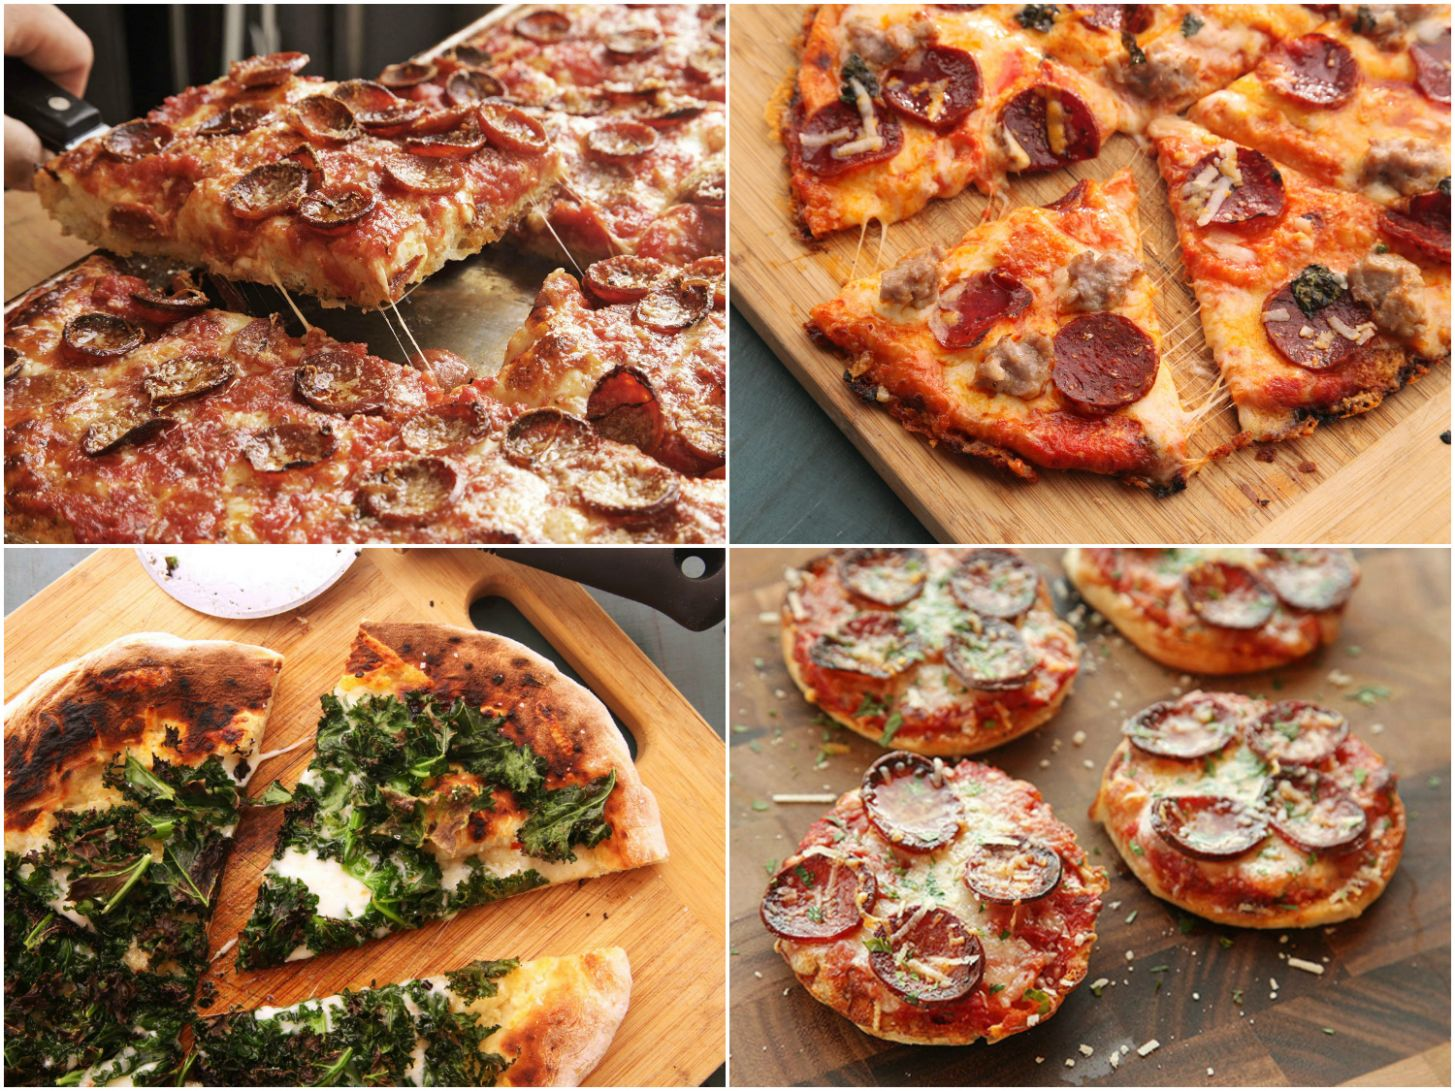 It's Not Delivery, It's 9 Homemade Pizza Recipes | Serious Eats